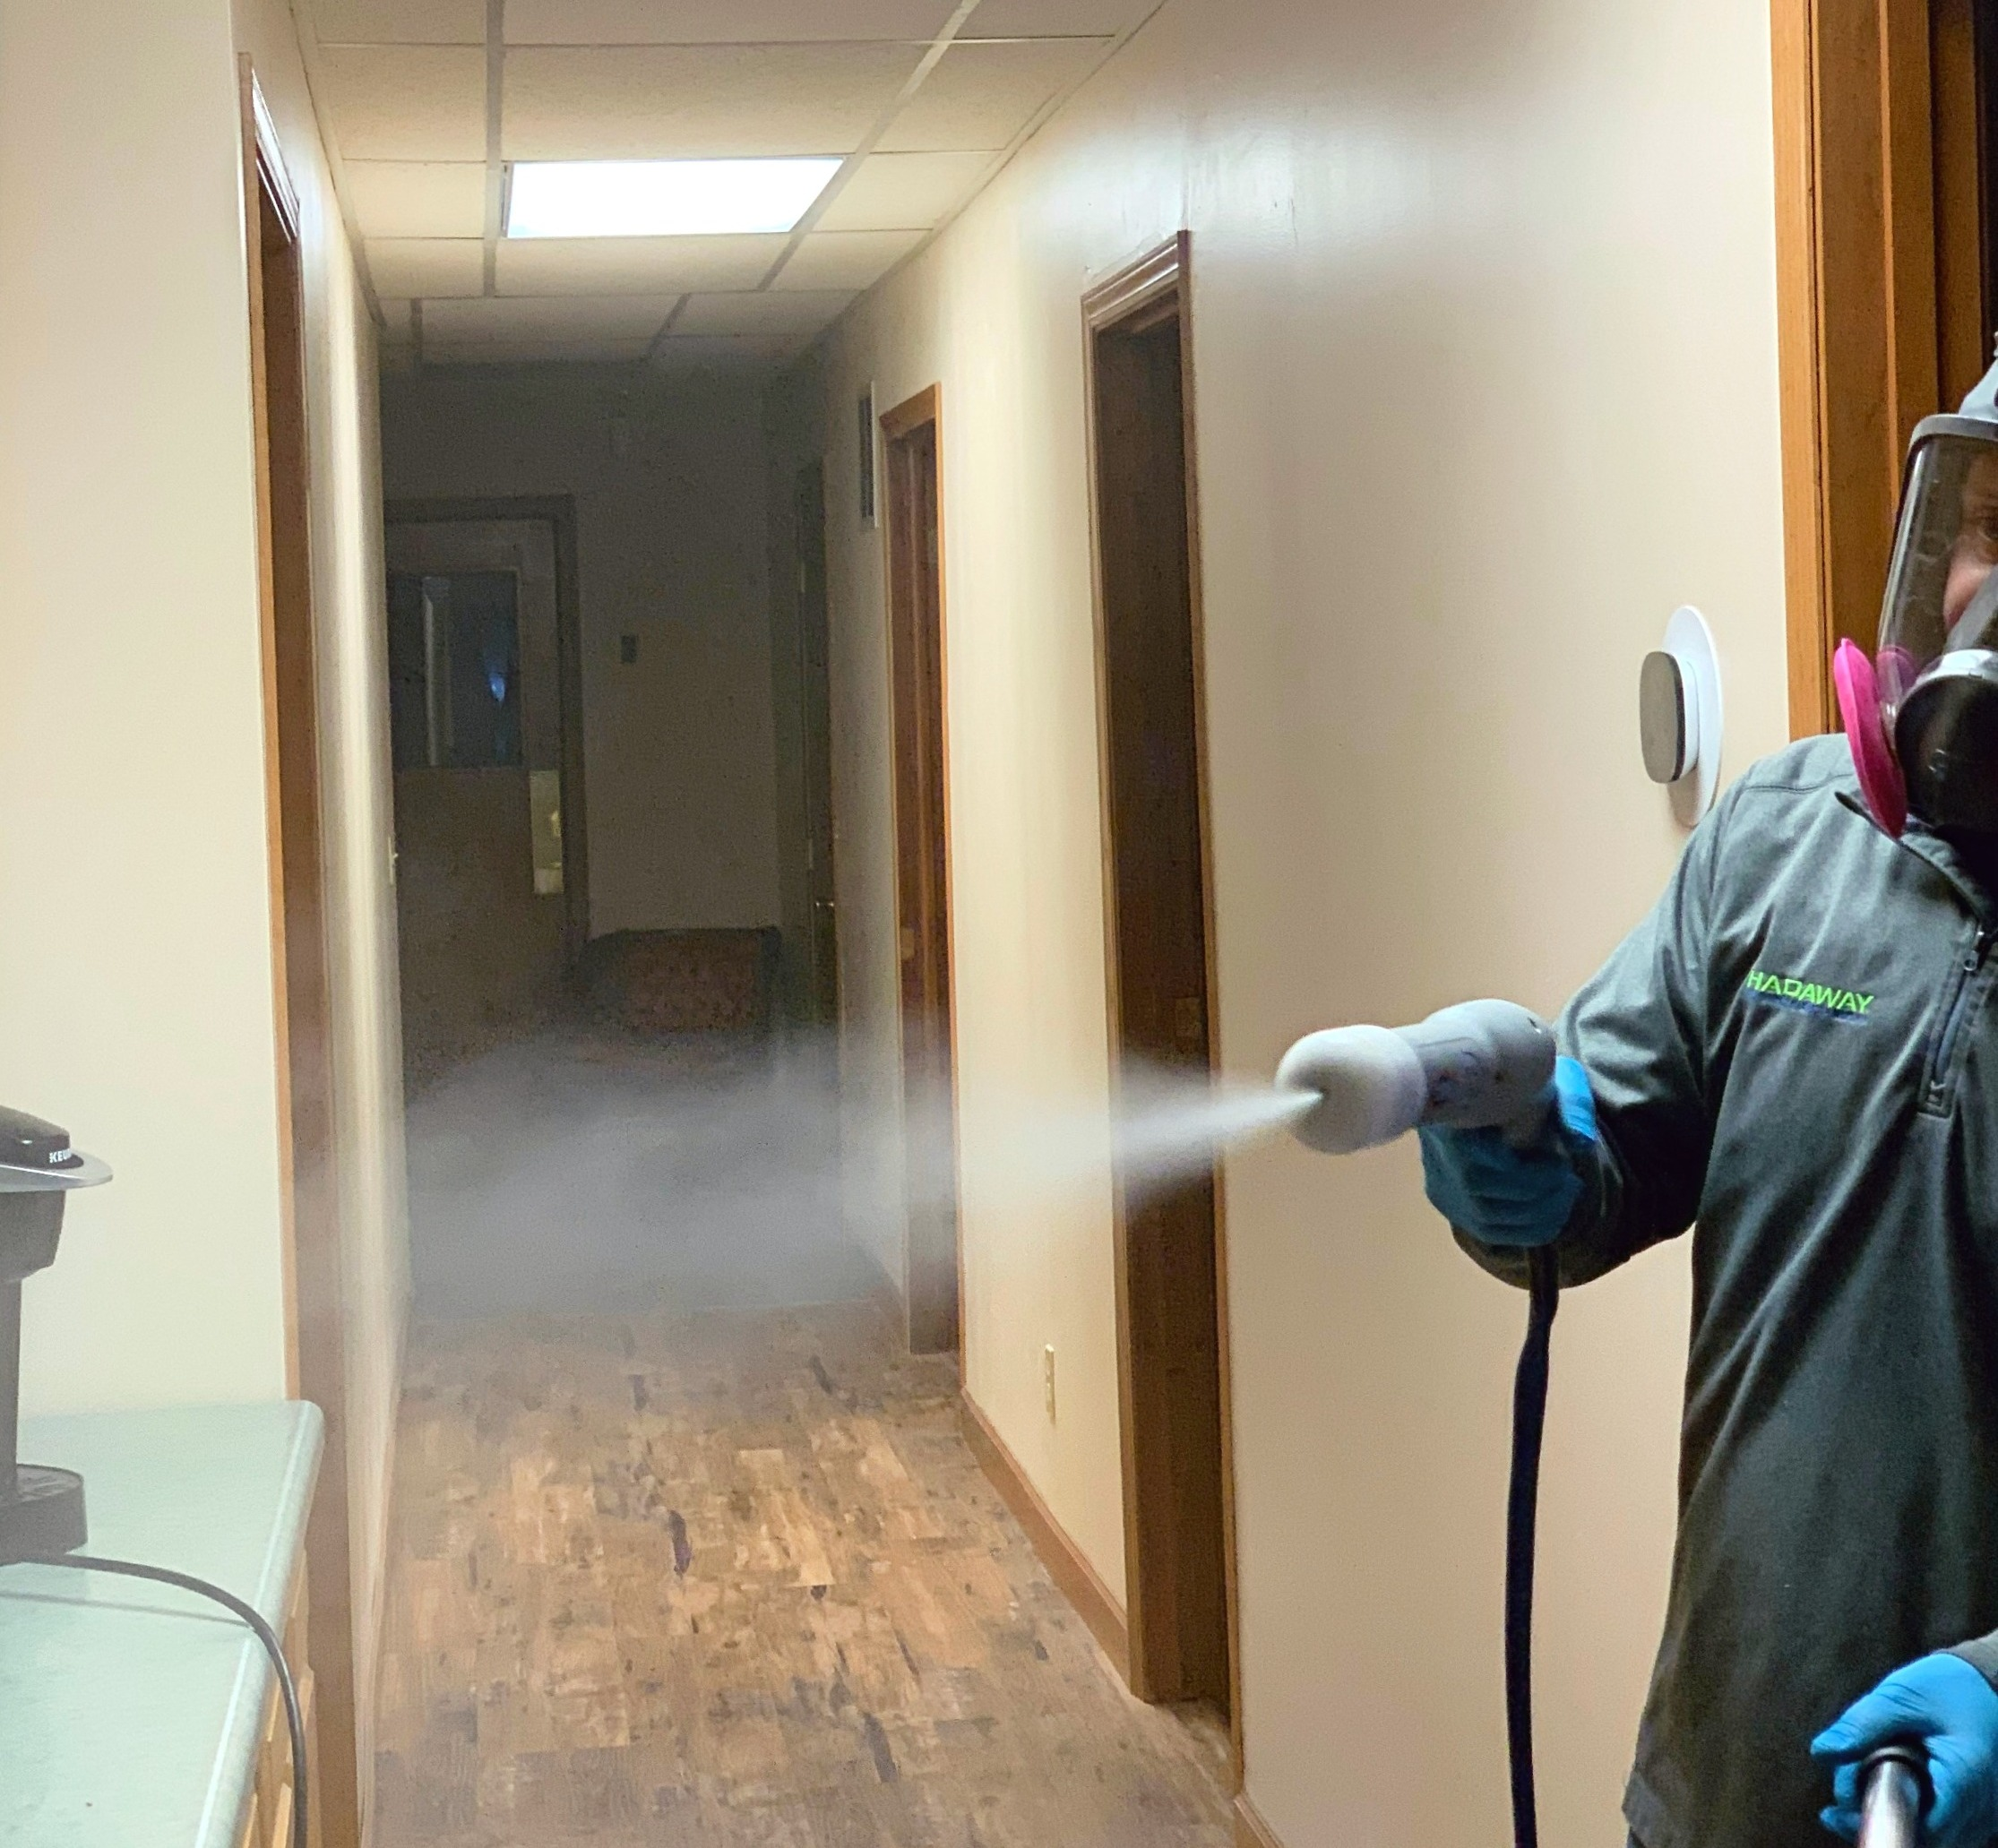 Covid 19 spraying cleaning